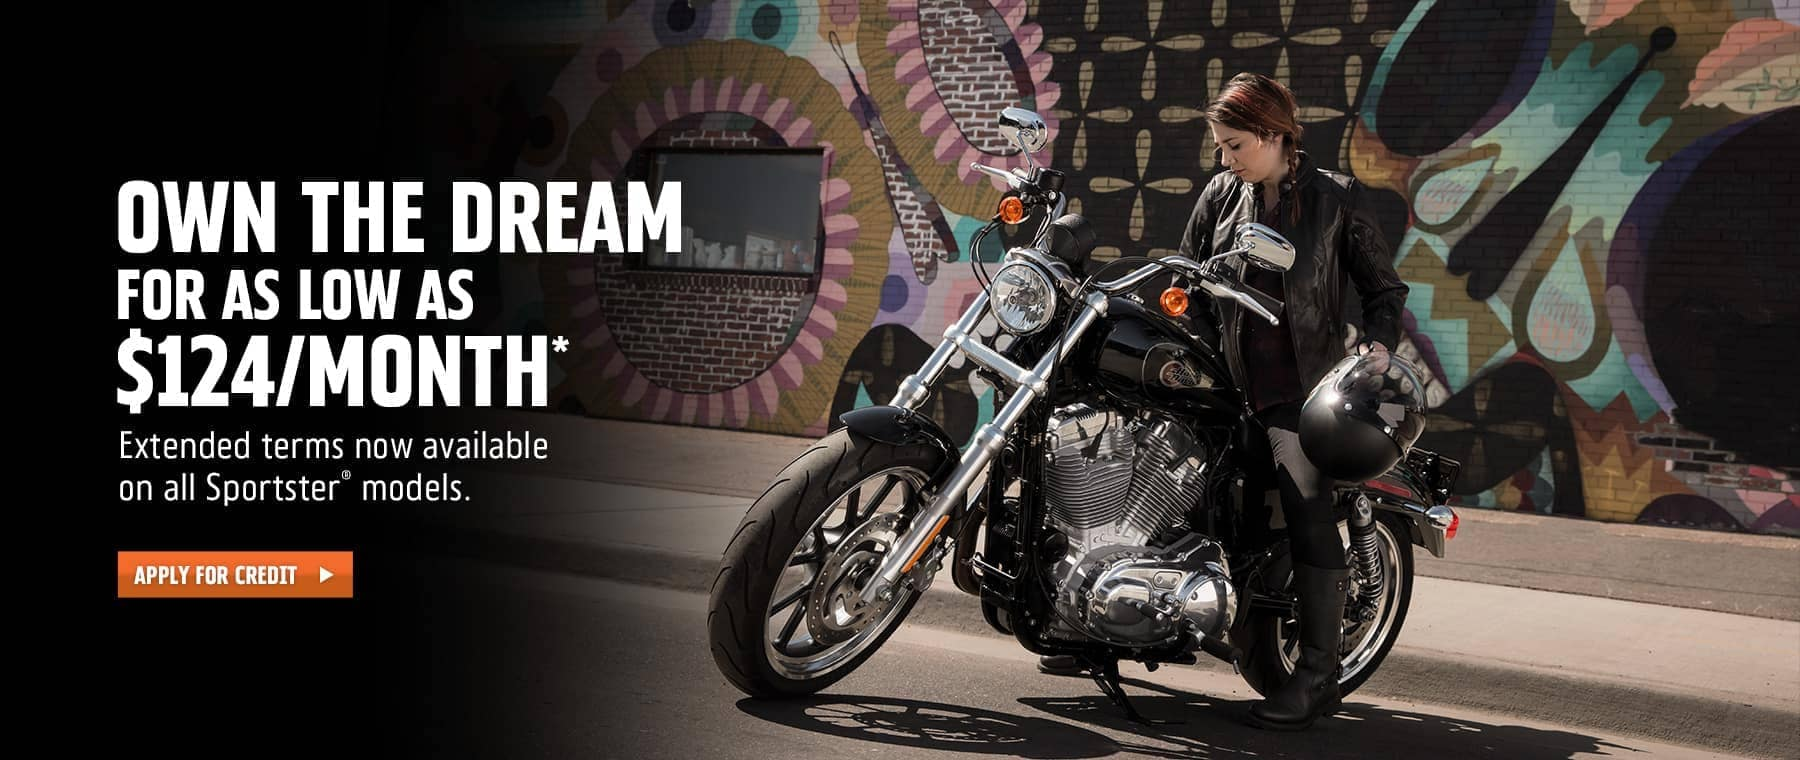 Extended terms now available on all Sportster models. Apply For Credit.